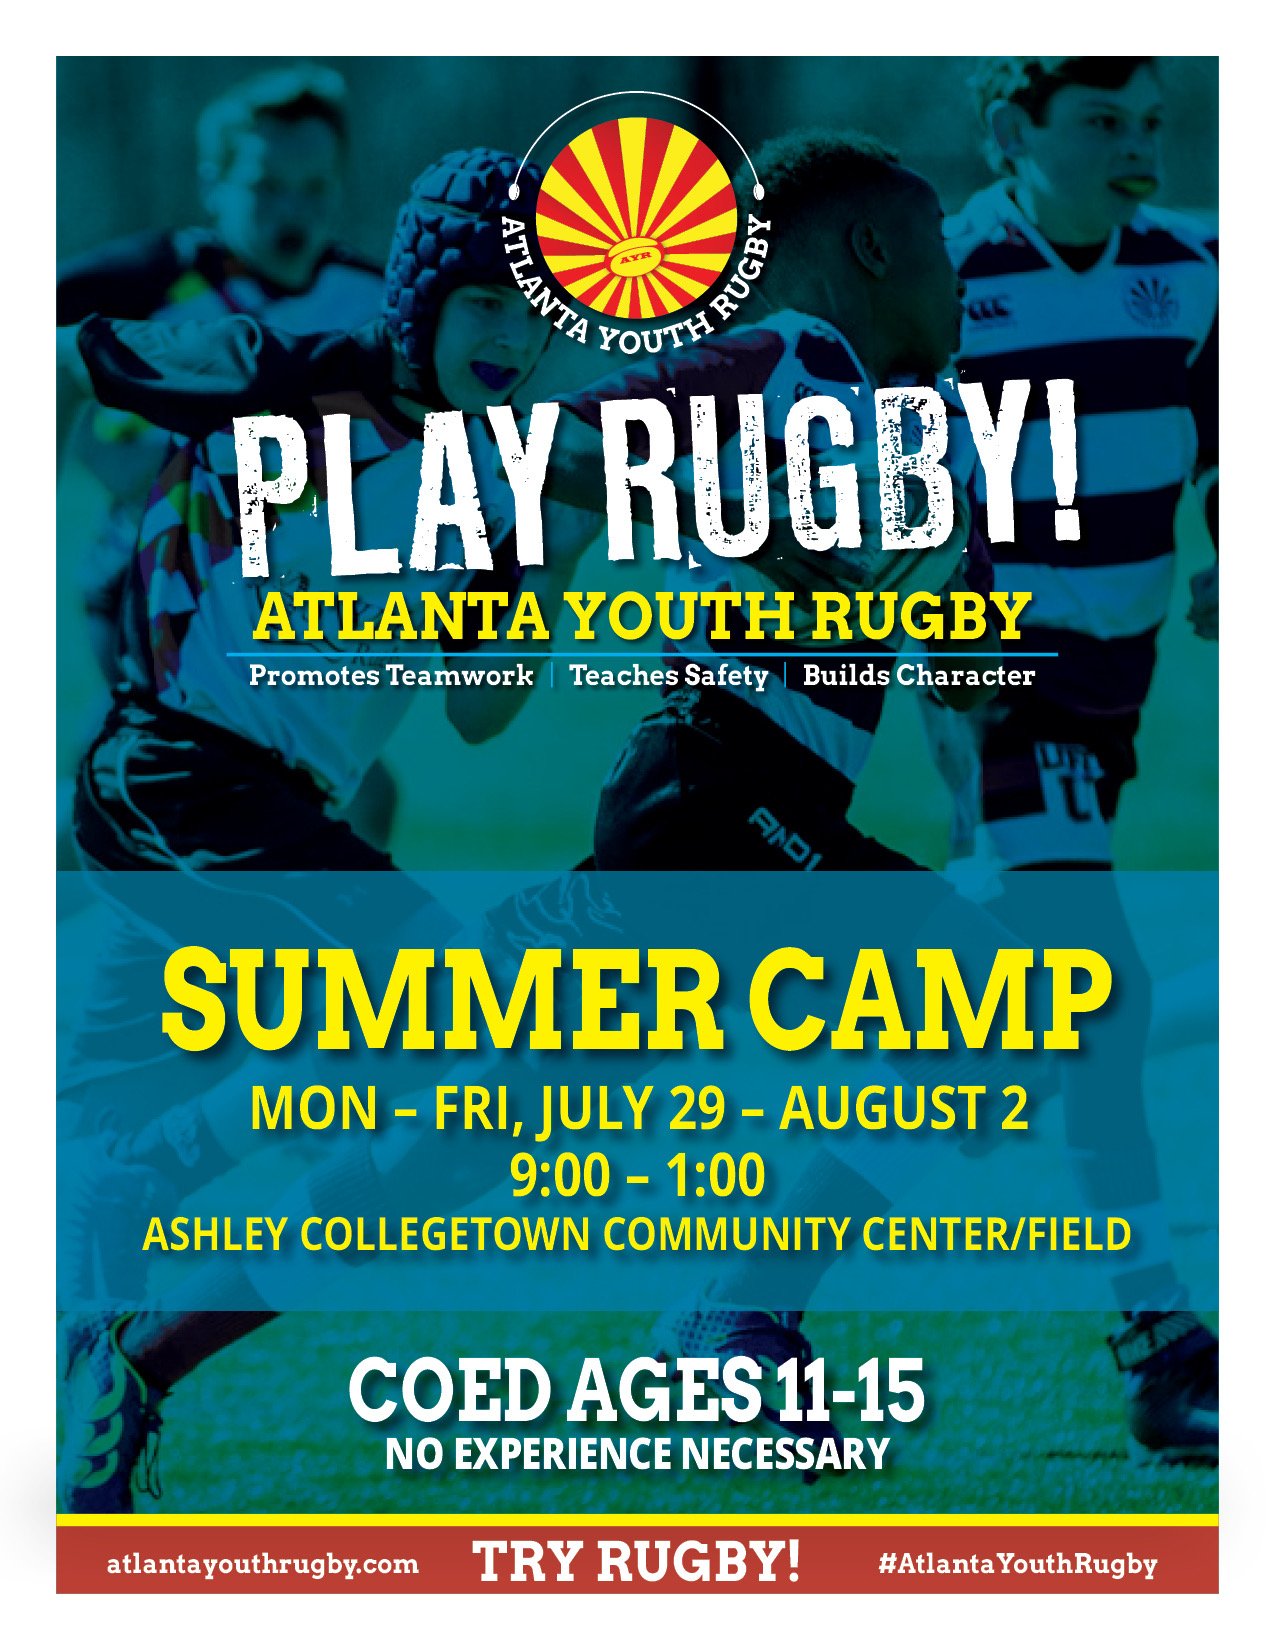 Rugby email flyer_ATLANTA_2019_camp_8.5x11.jpeg